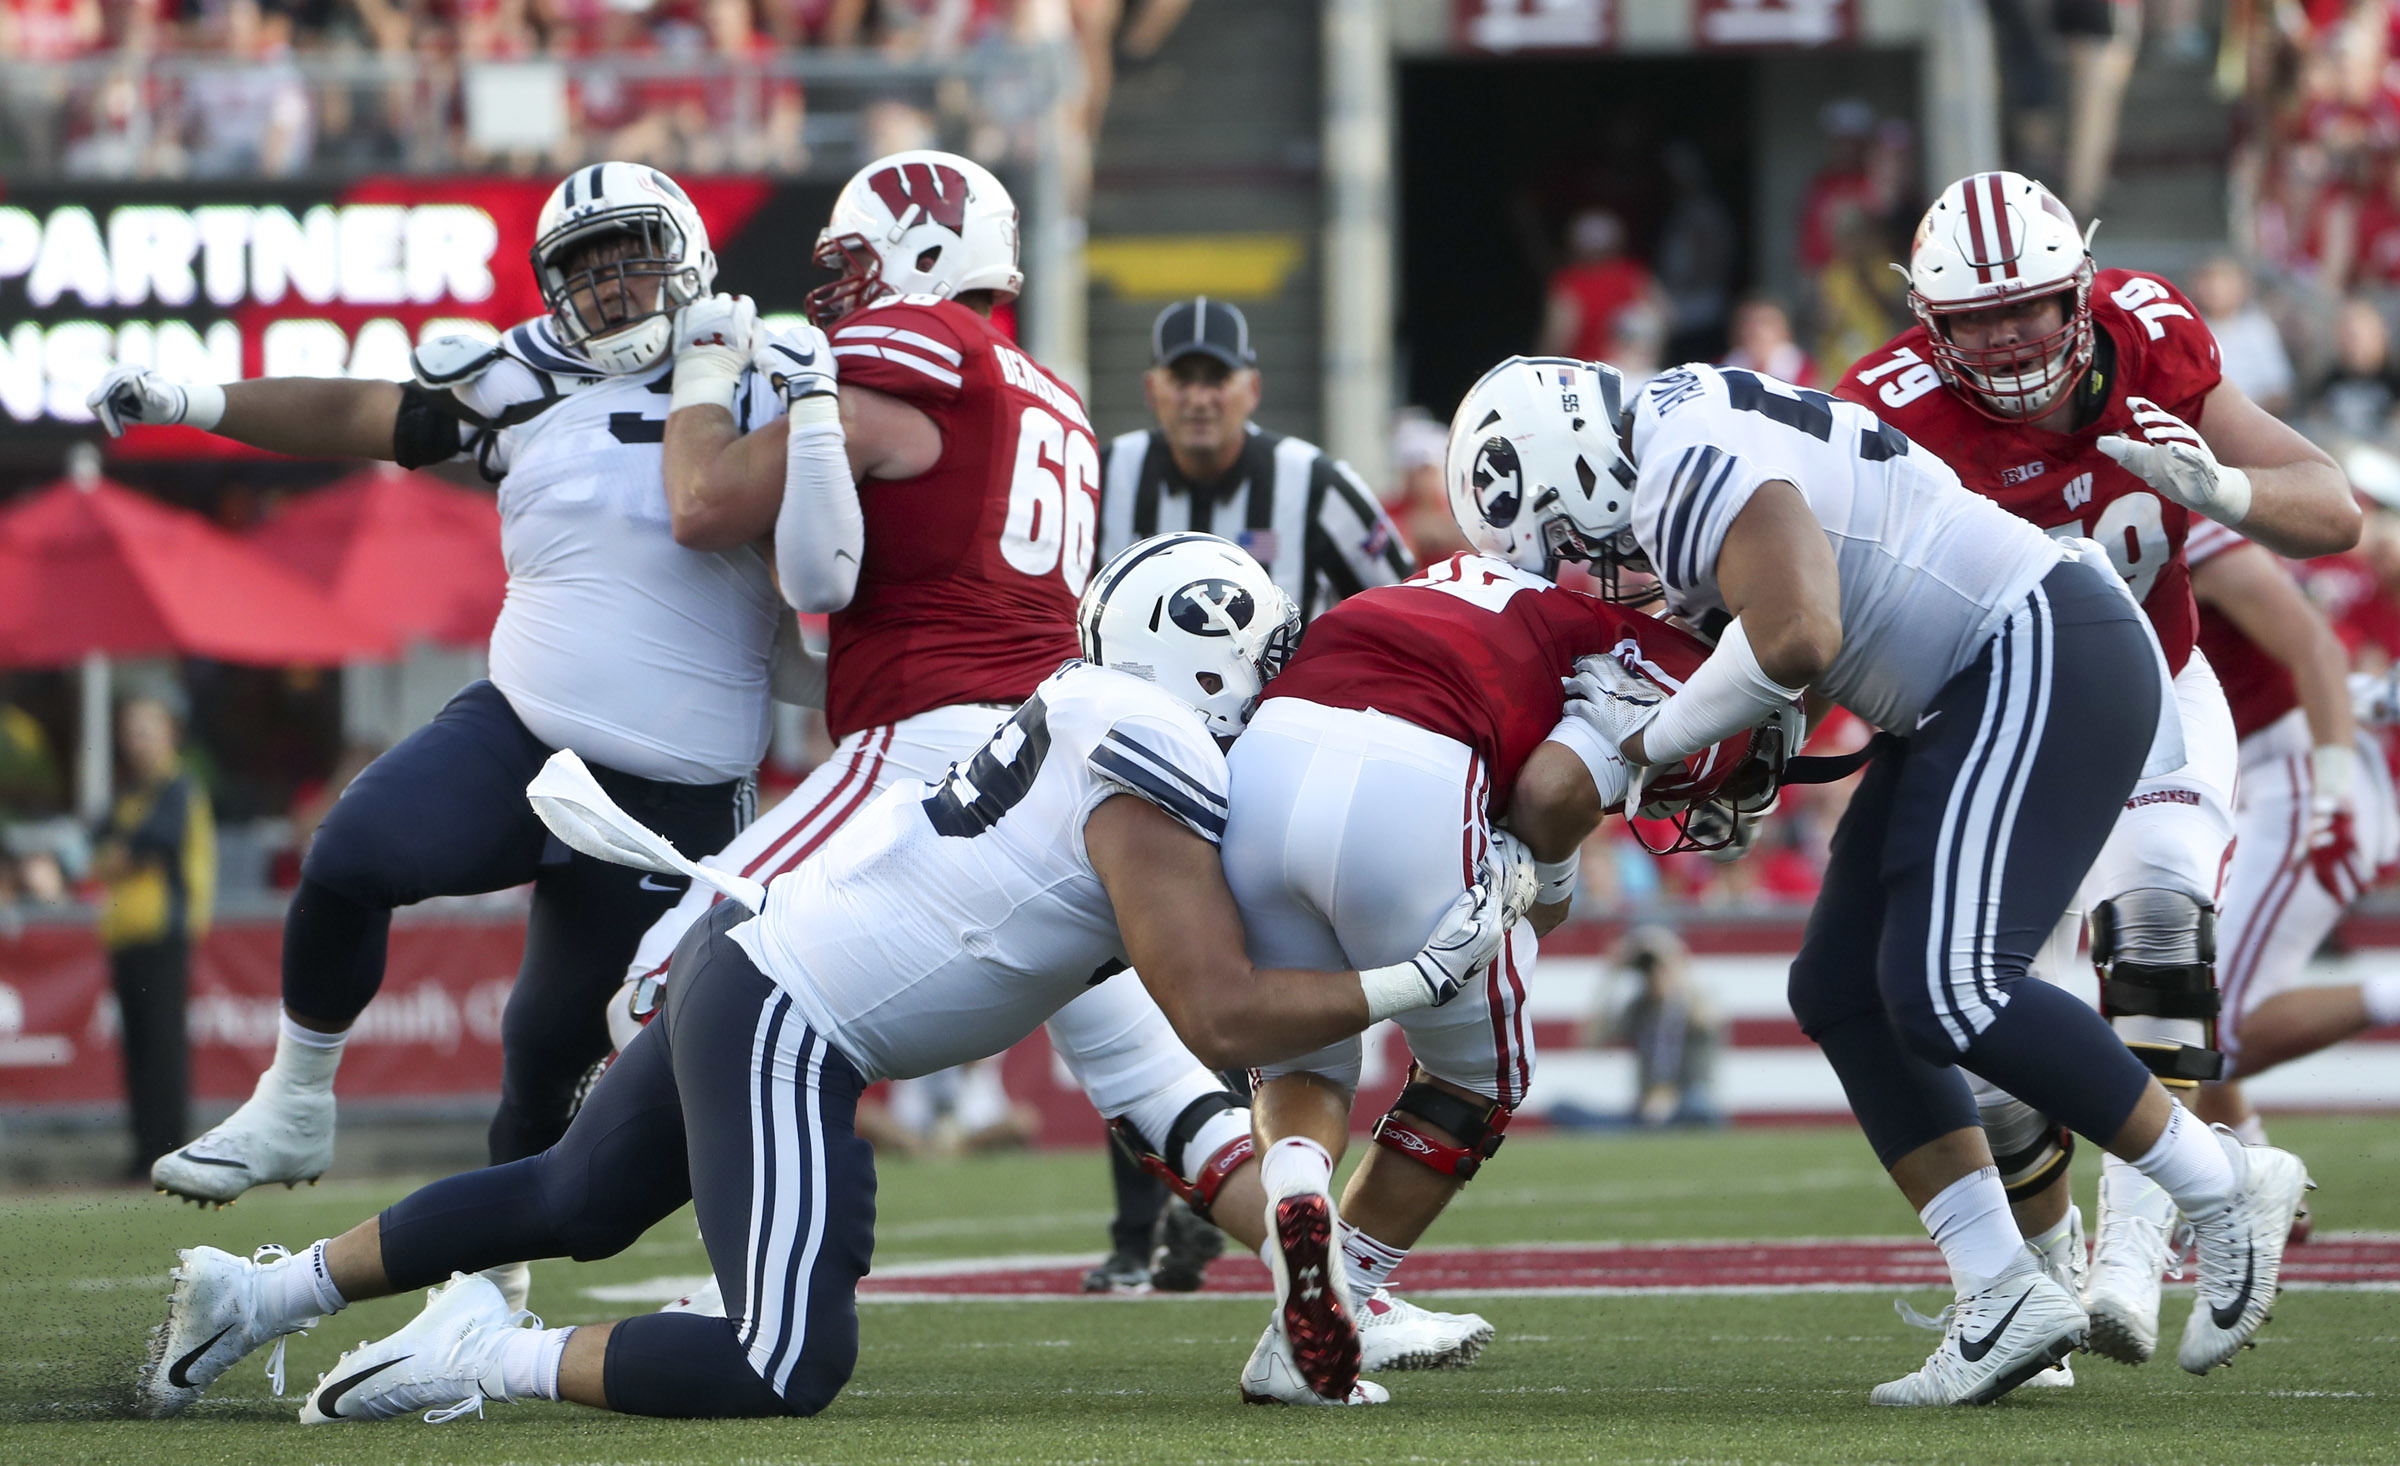 Brigham Young Cougars defensive linemen Lorenzo Fauatea (55) and Zac Dawe (99) sack Wisconsin Badgers quarterback Alex Hornibrook (12) during the Wisconsin-BYU football game at Camp Randall Stadium in Madison, Wisconsin, on Saturday, Sept. 15, 2018. Fauatea is among BYU players asking officials to let family members attend Saturday's game vs. Troy in Provo, which was moved to the moderate risk level designation for COVID-19 on Tuesday, Sept. 22, 2020.